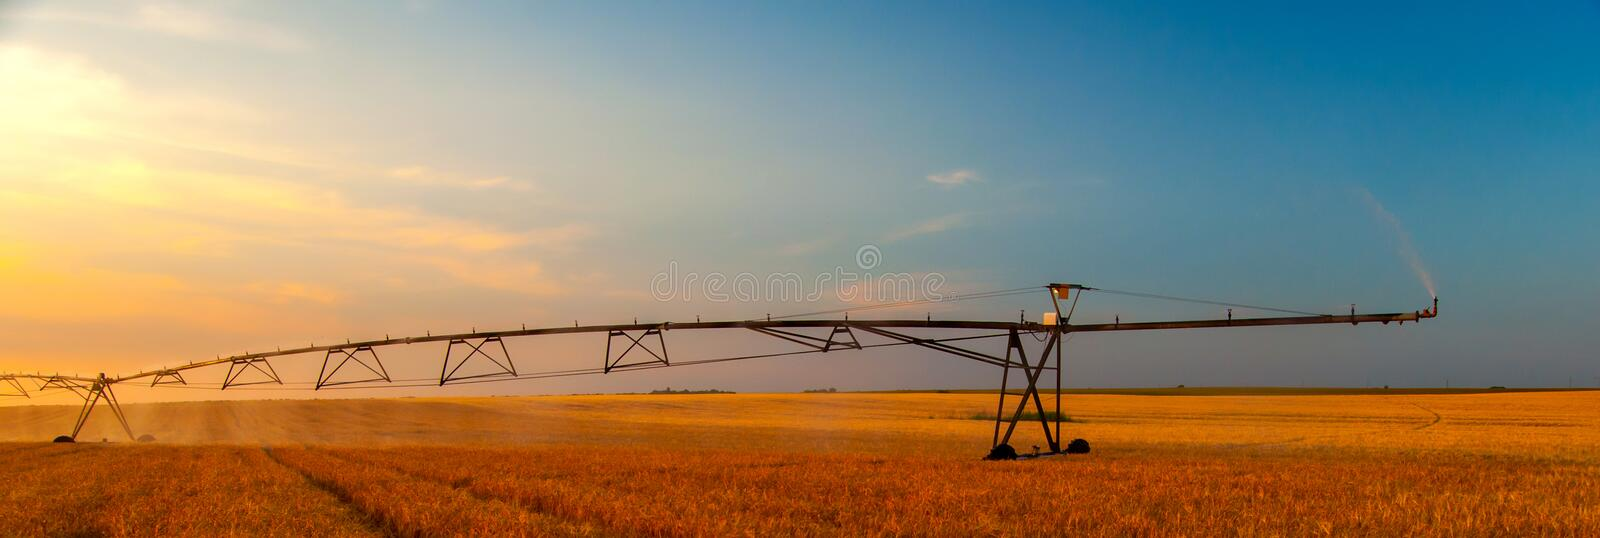 Irrigation system watering wheat field at summer sunset.  royalty free stock photos